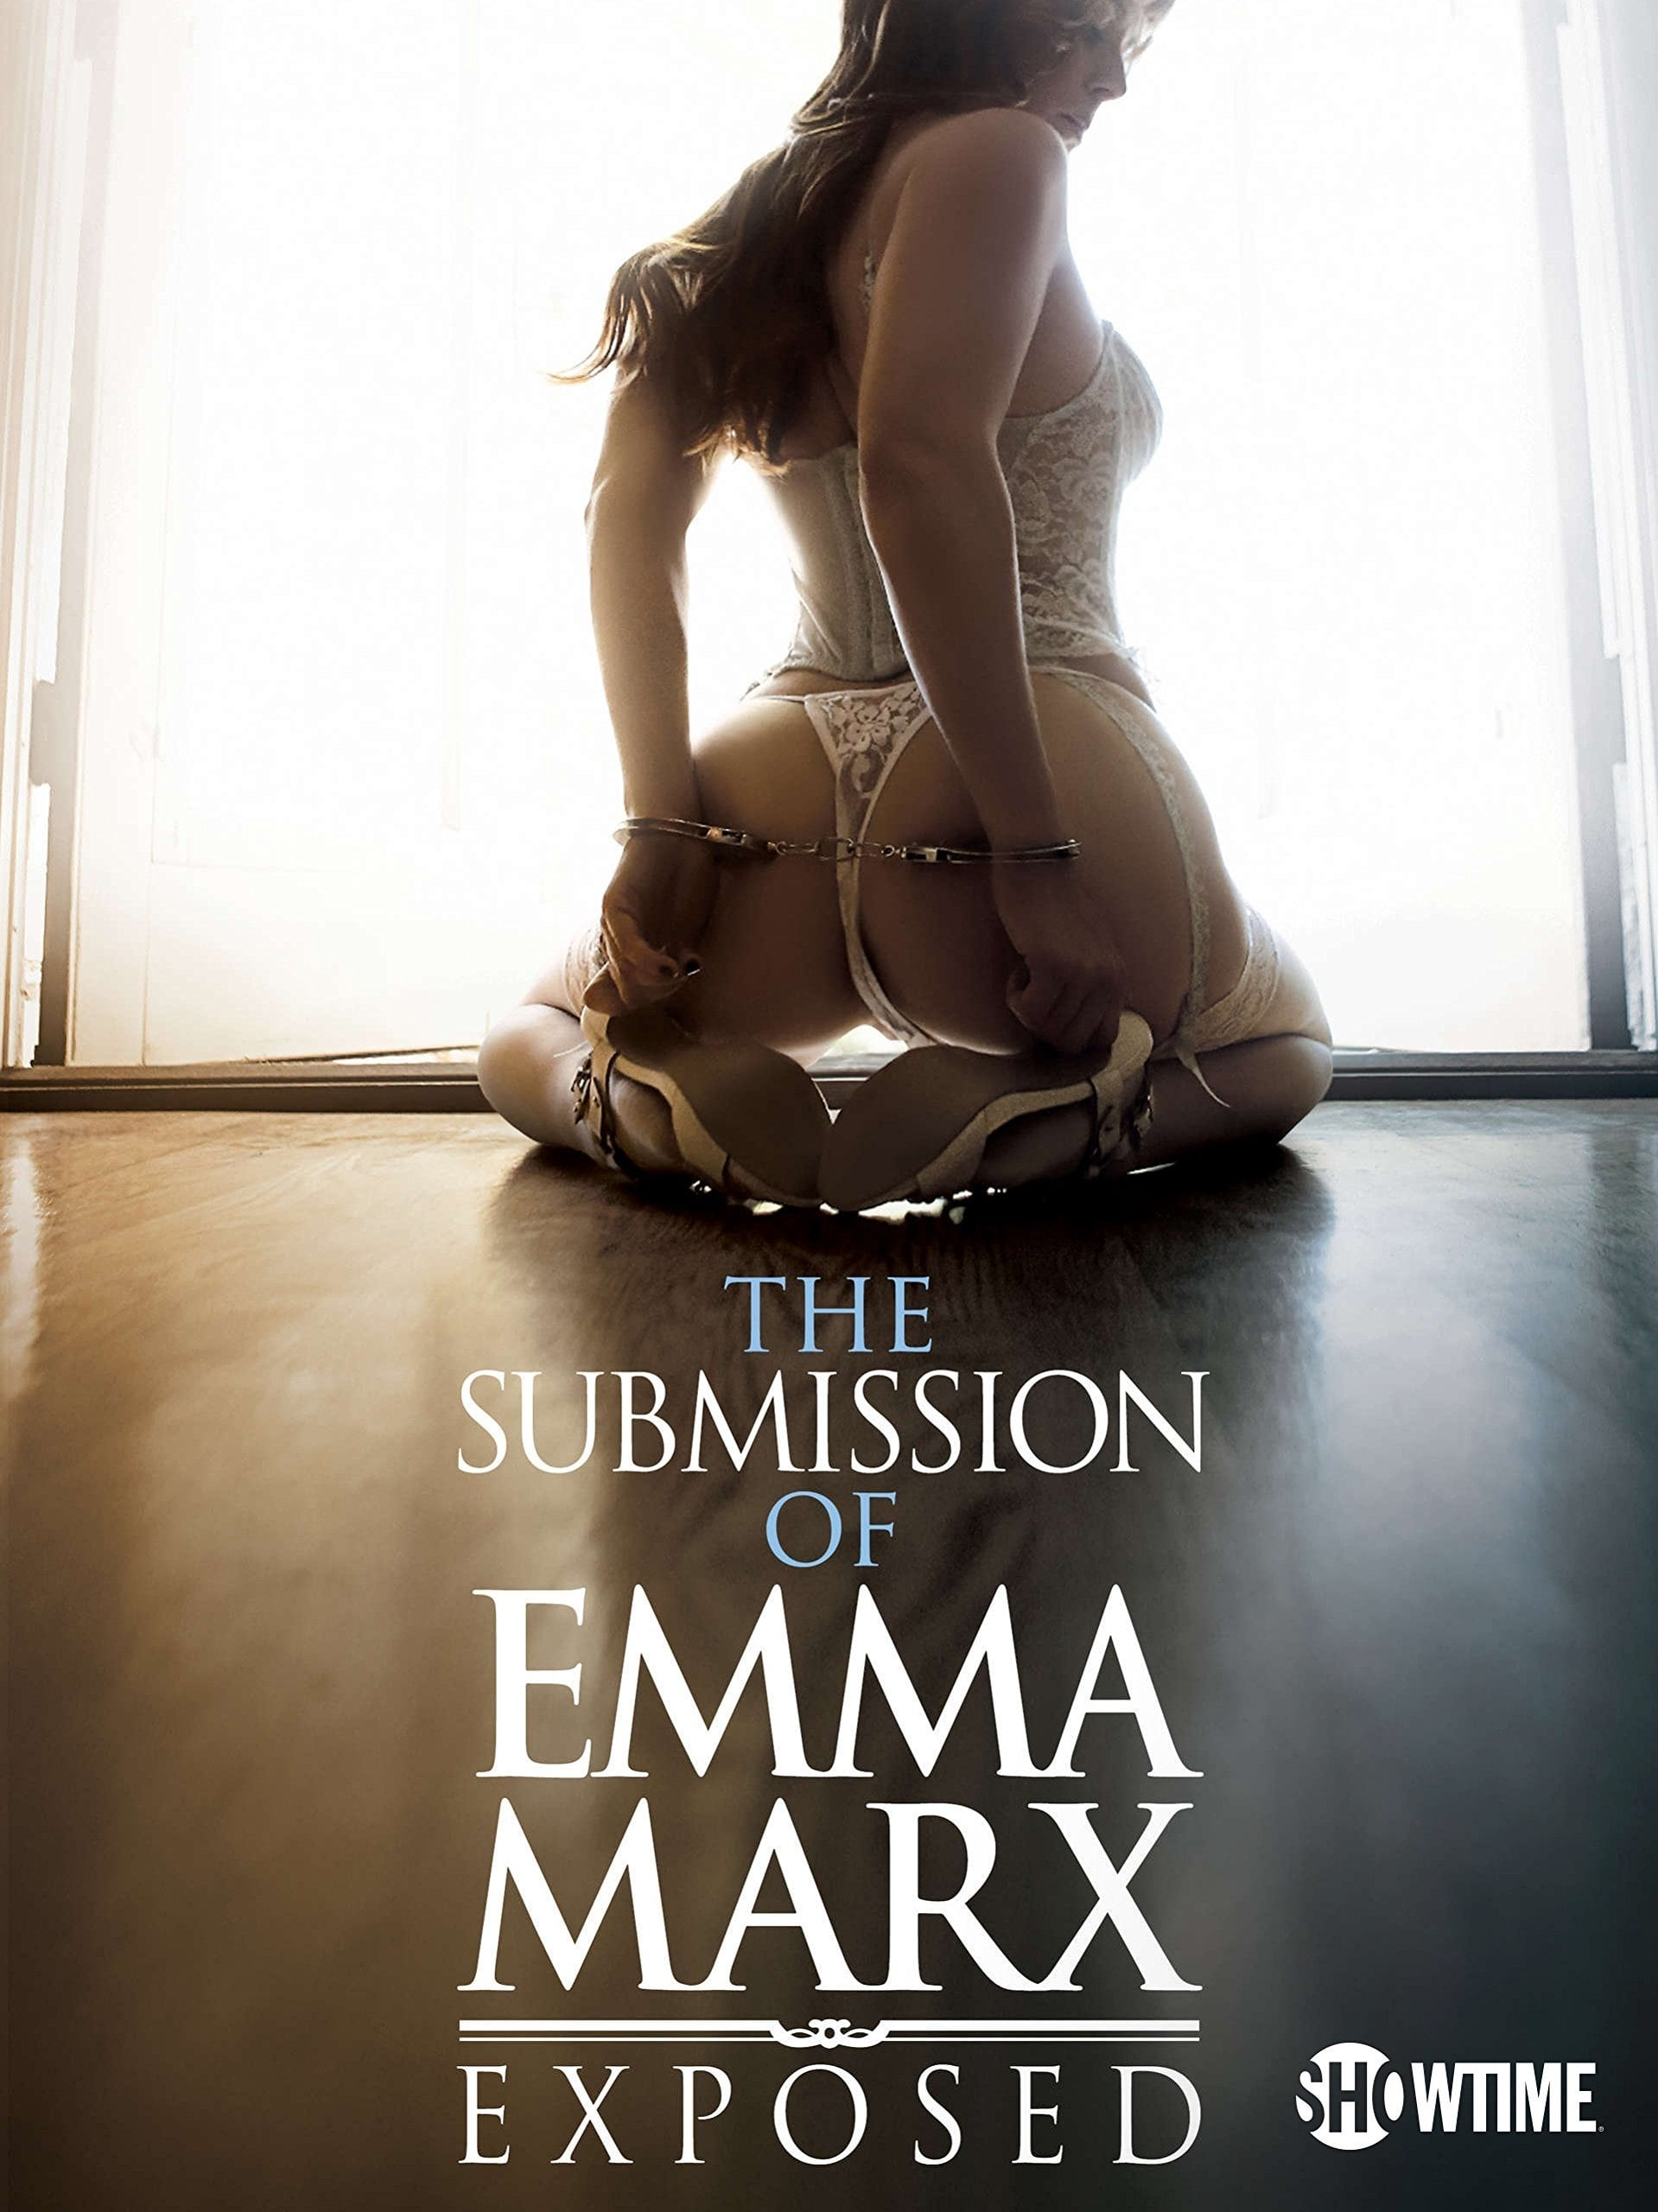 all movies from the submission of emma marx collection